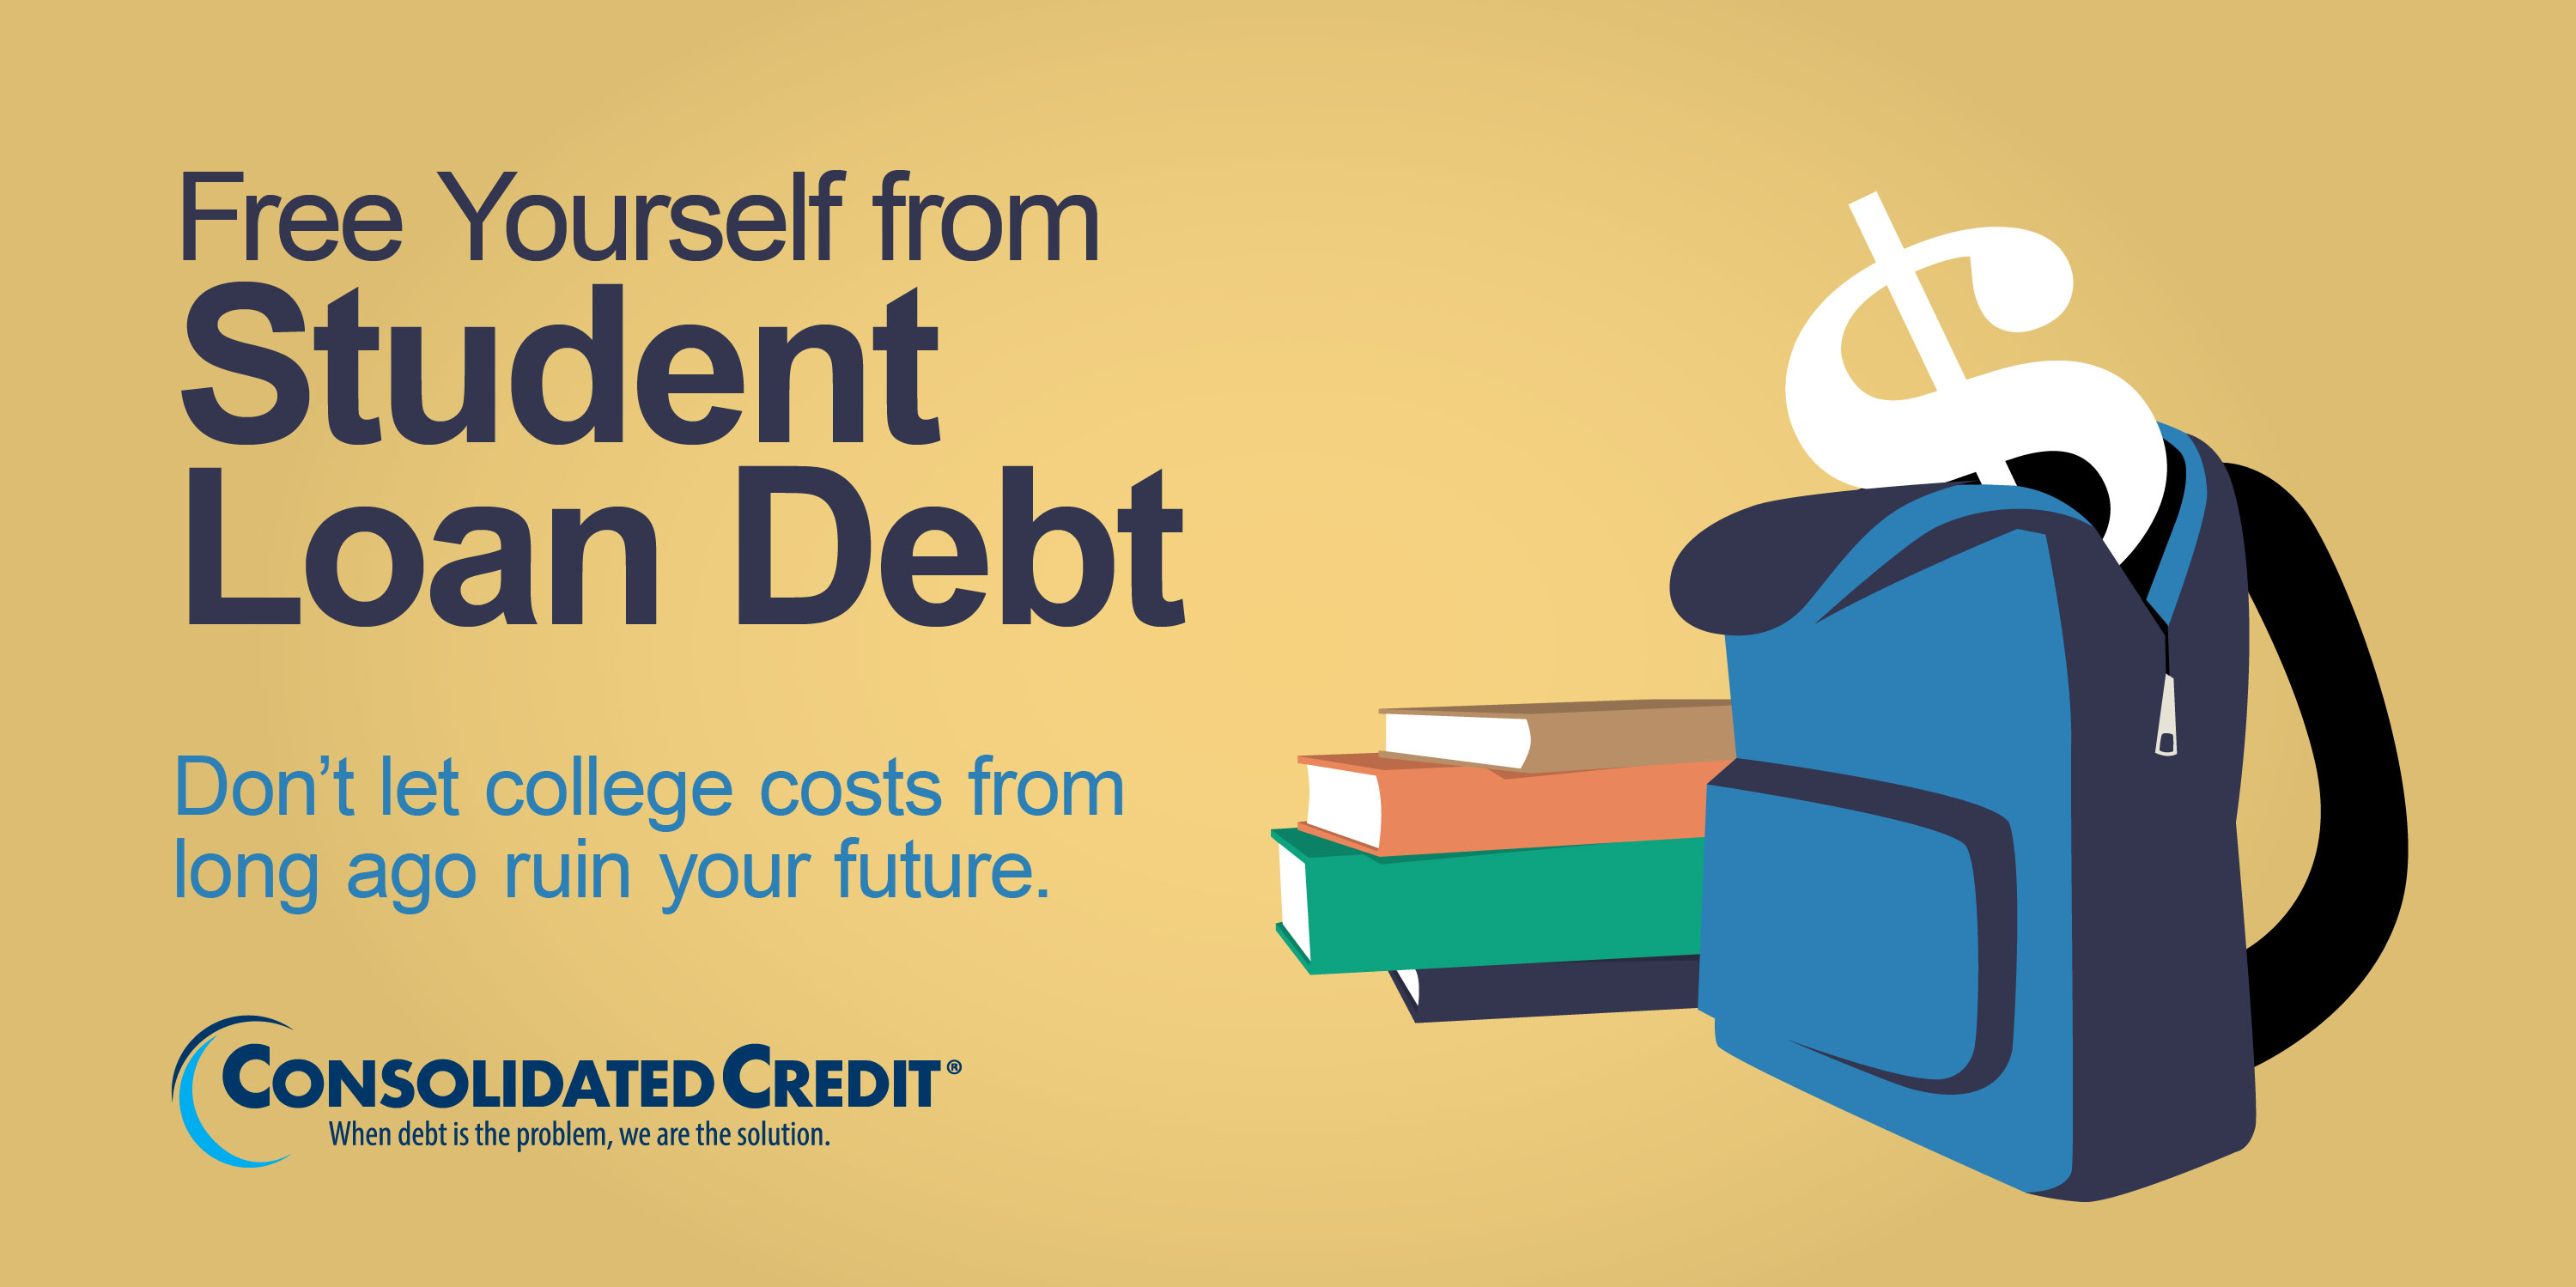 Free Yourself from Student Loan Debt - Don't let college costs from long ago ruin your future